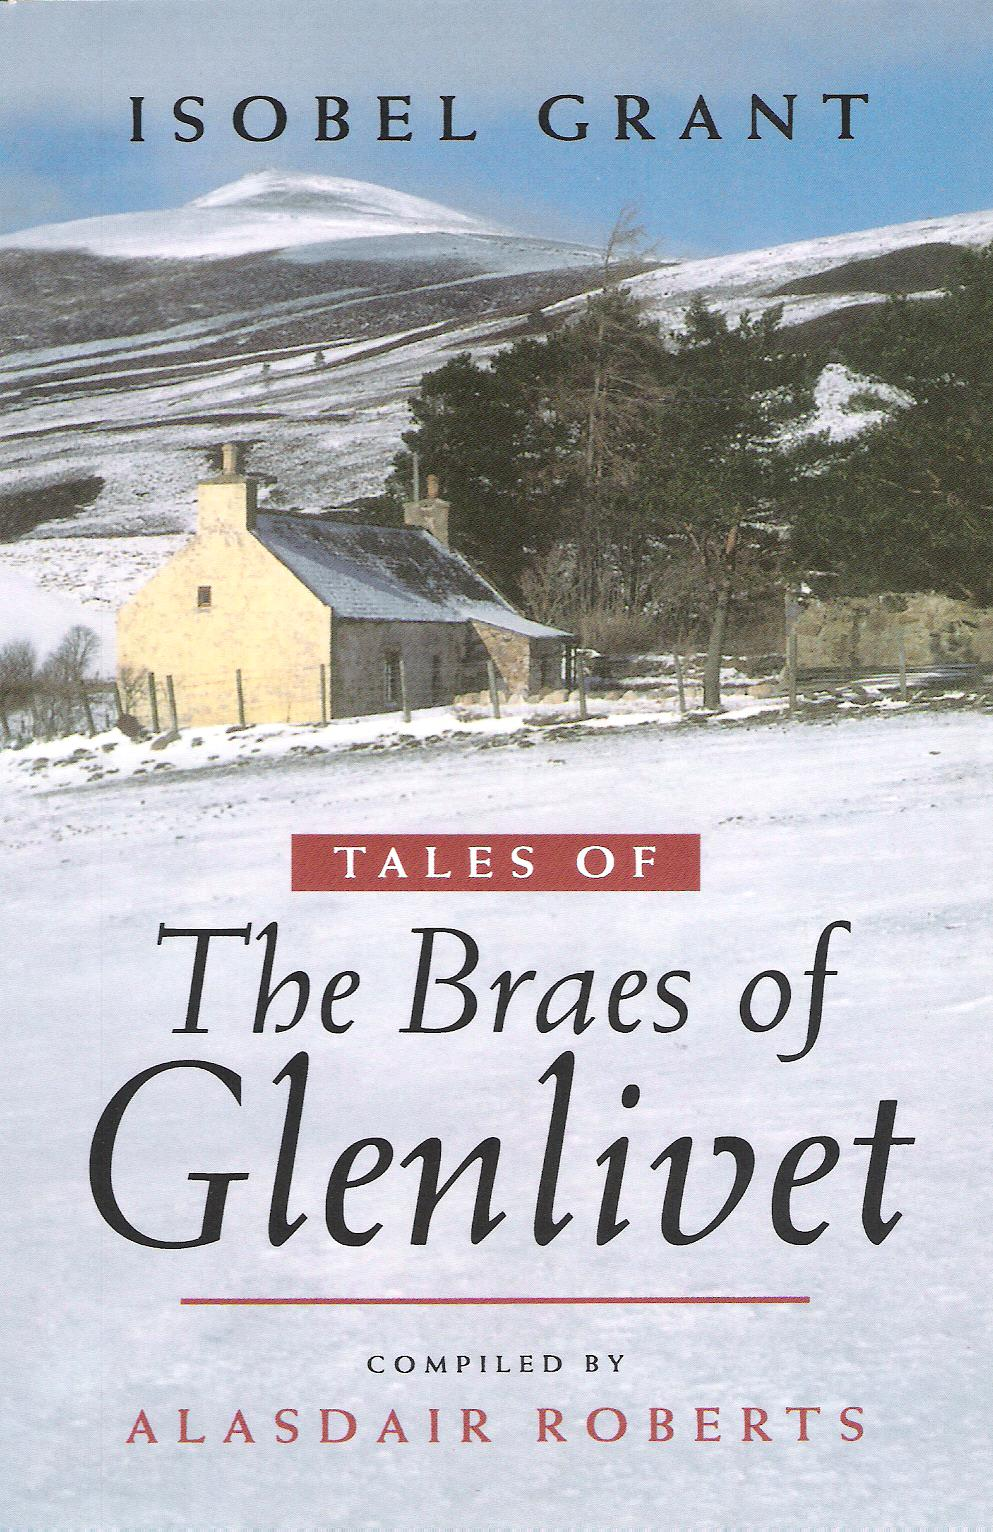 Image for Tales of the Braes of Glenlivet.